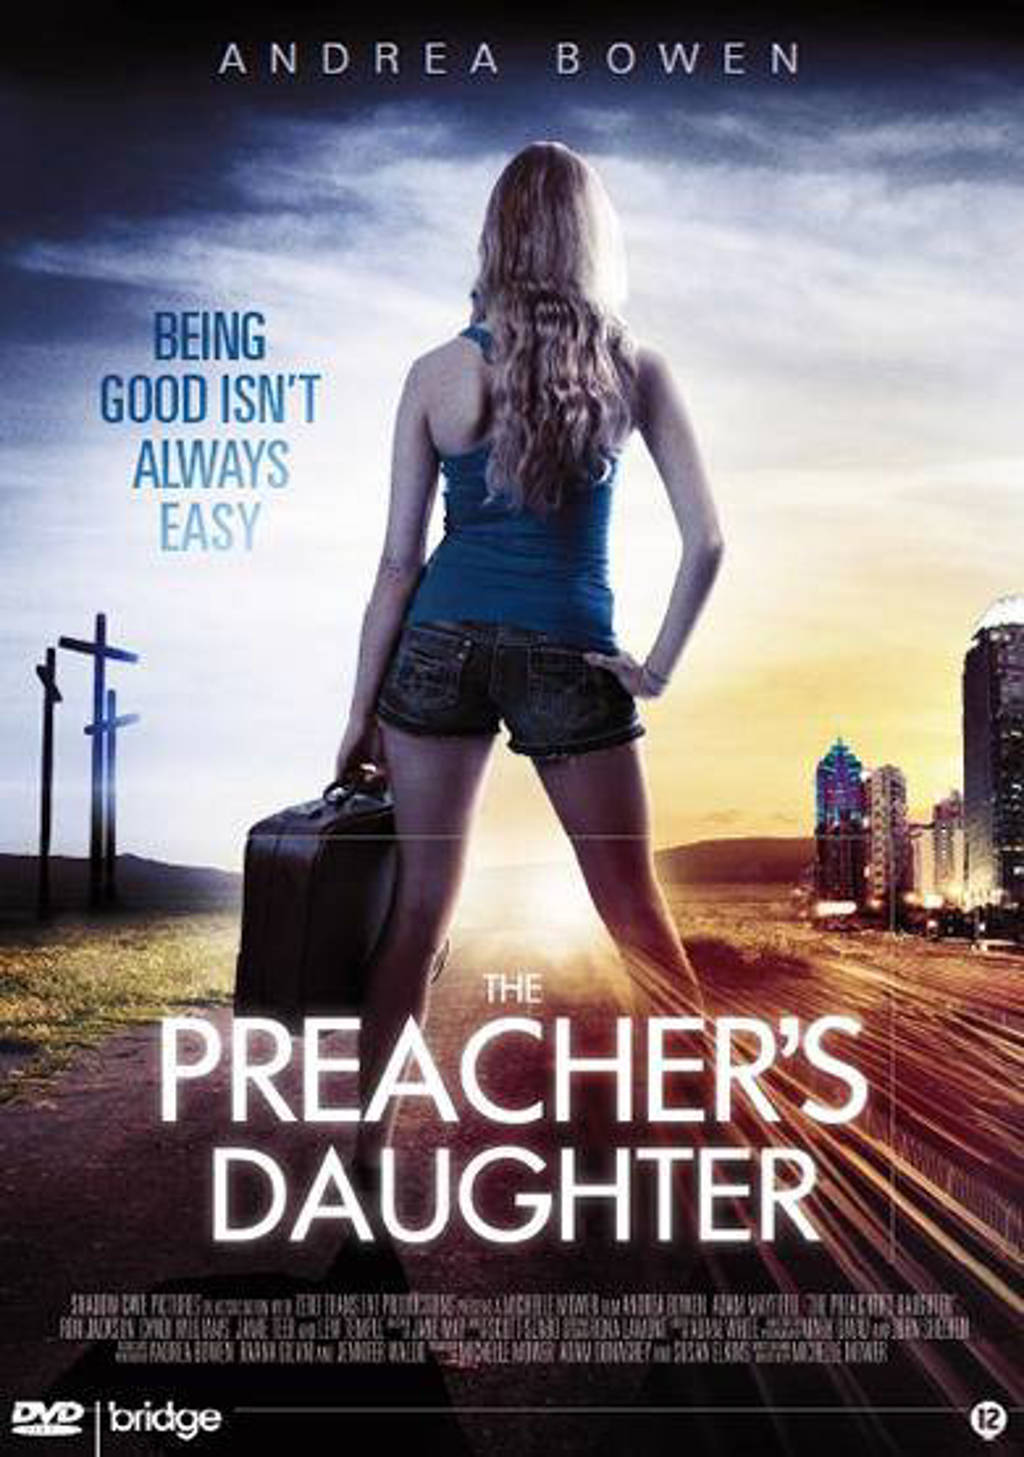 Preachers daughter (DVD)